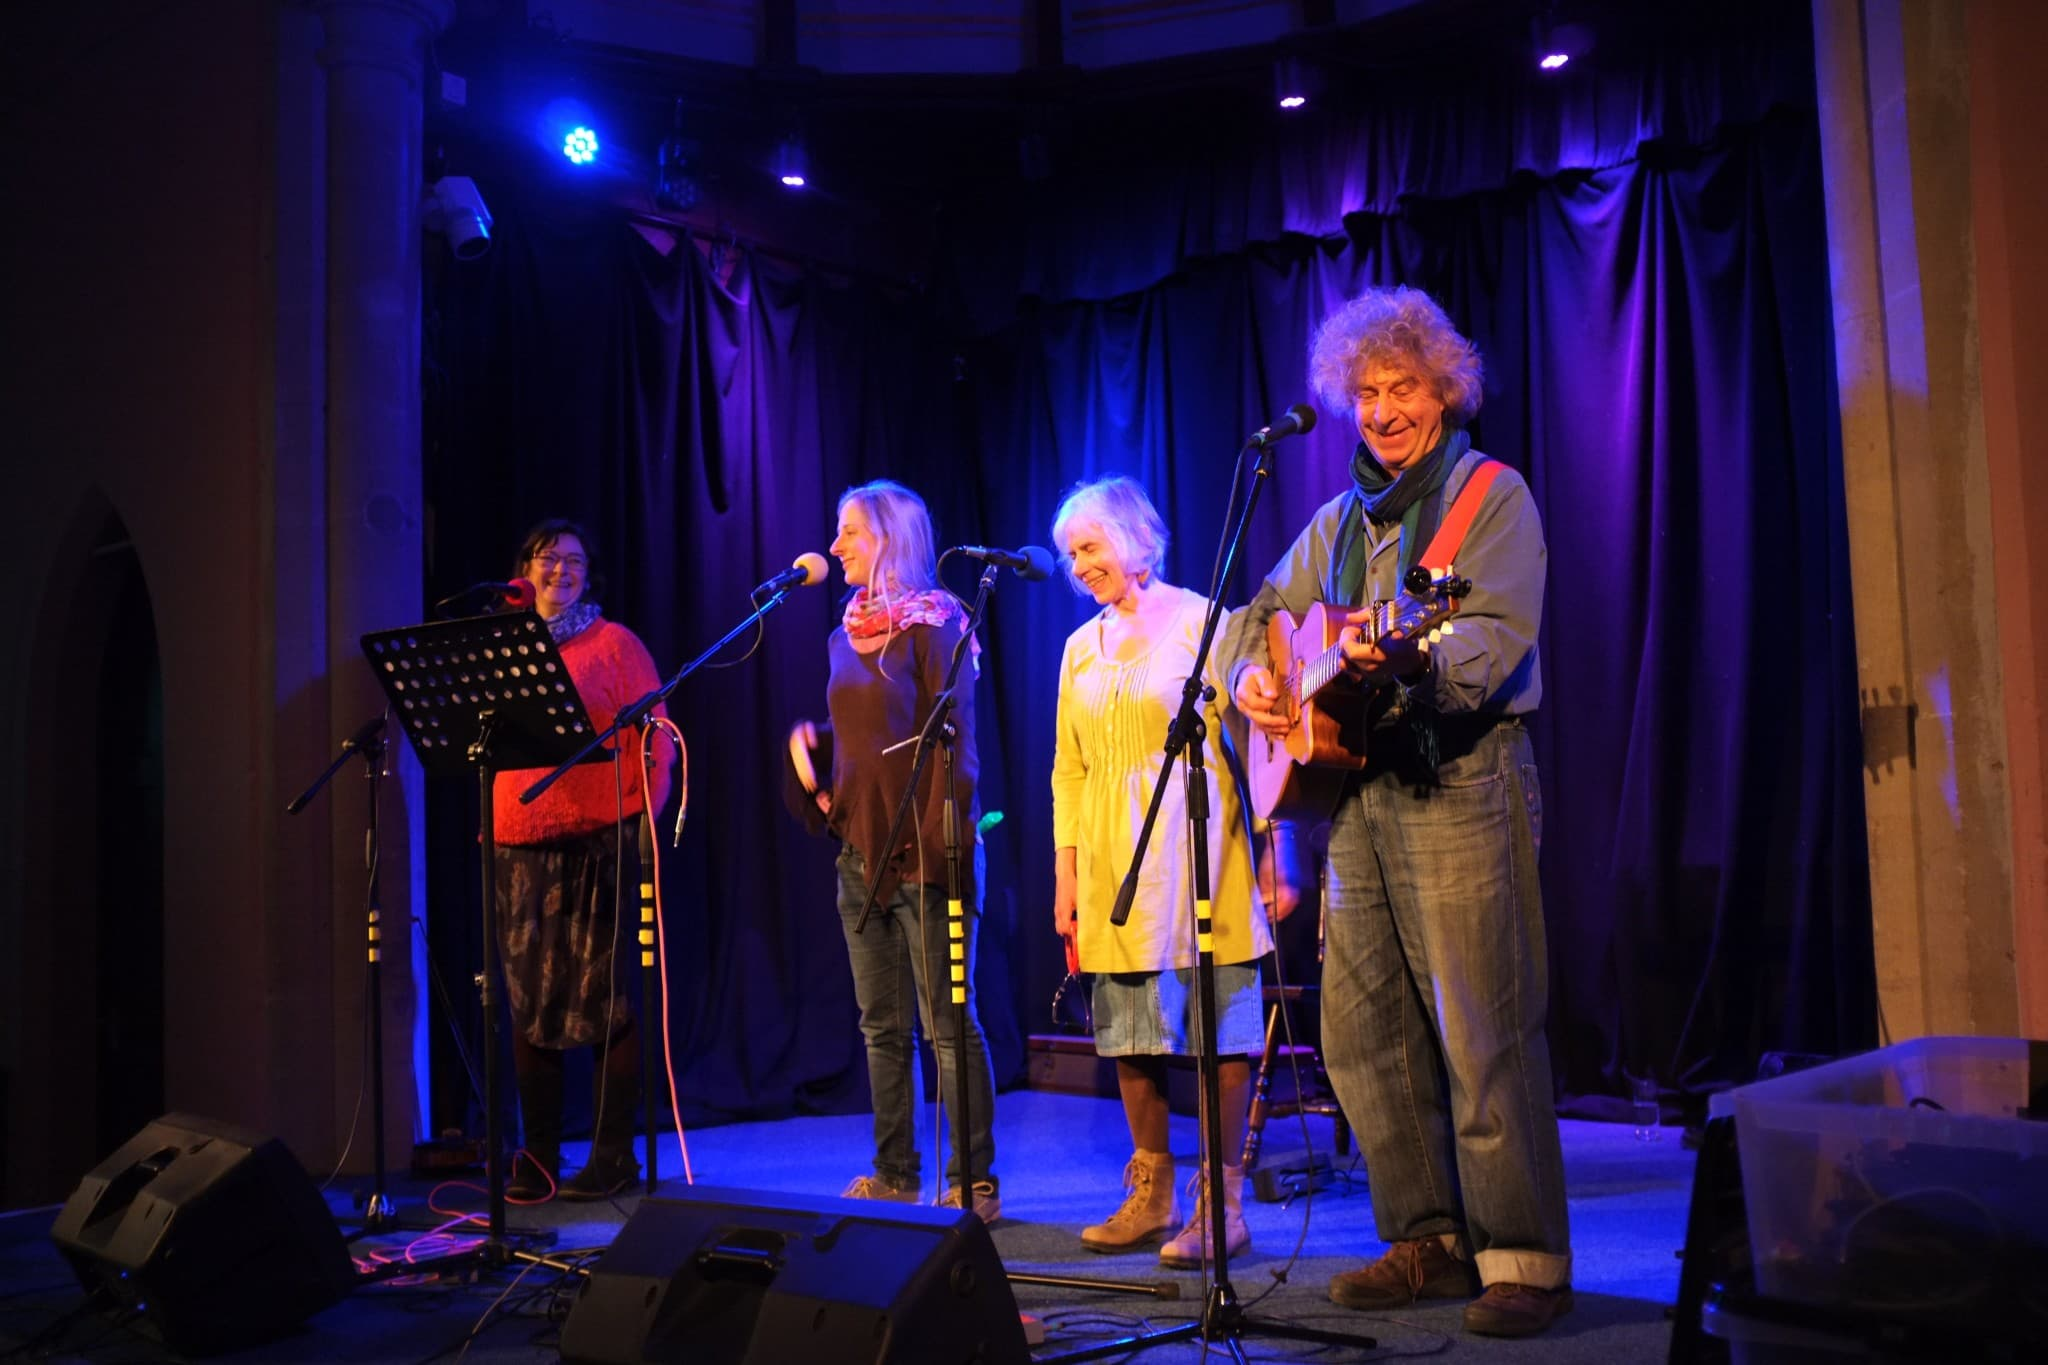 Firelight Folk - Folkish music and wonderful harmonies